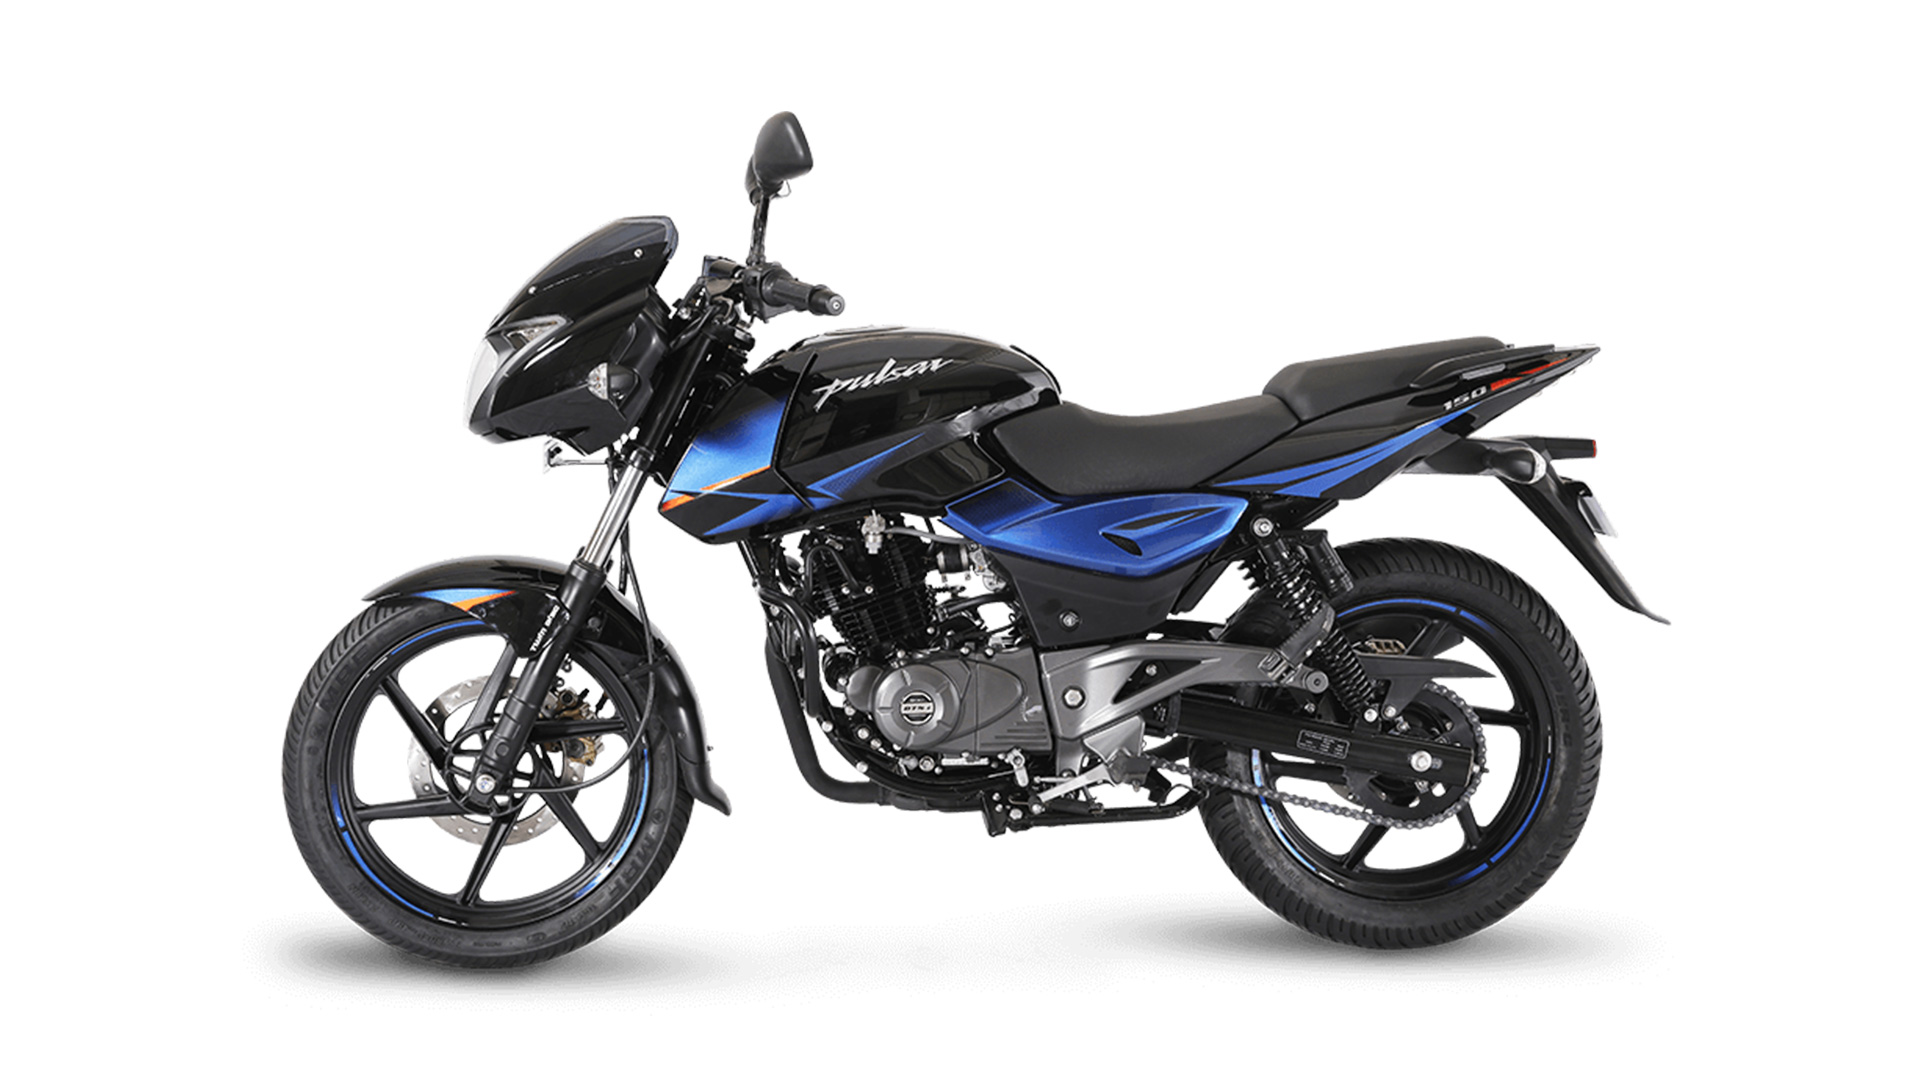 Bajaj Pulsar 150 Dts I 2018 Twin Disc Price Mileage Reviews Led Or Lamp Pulser Gallery